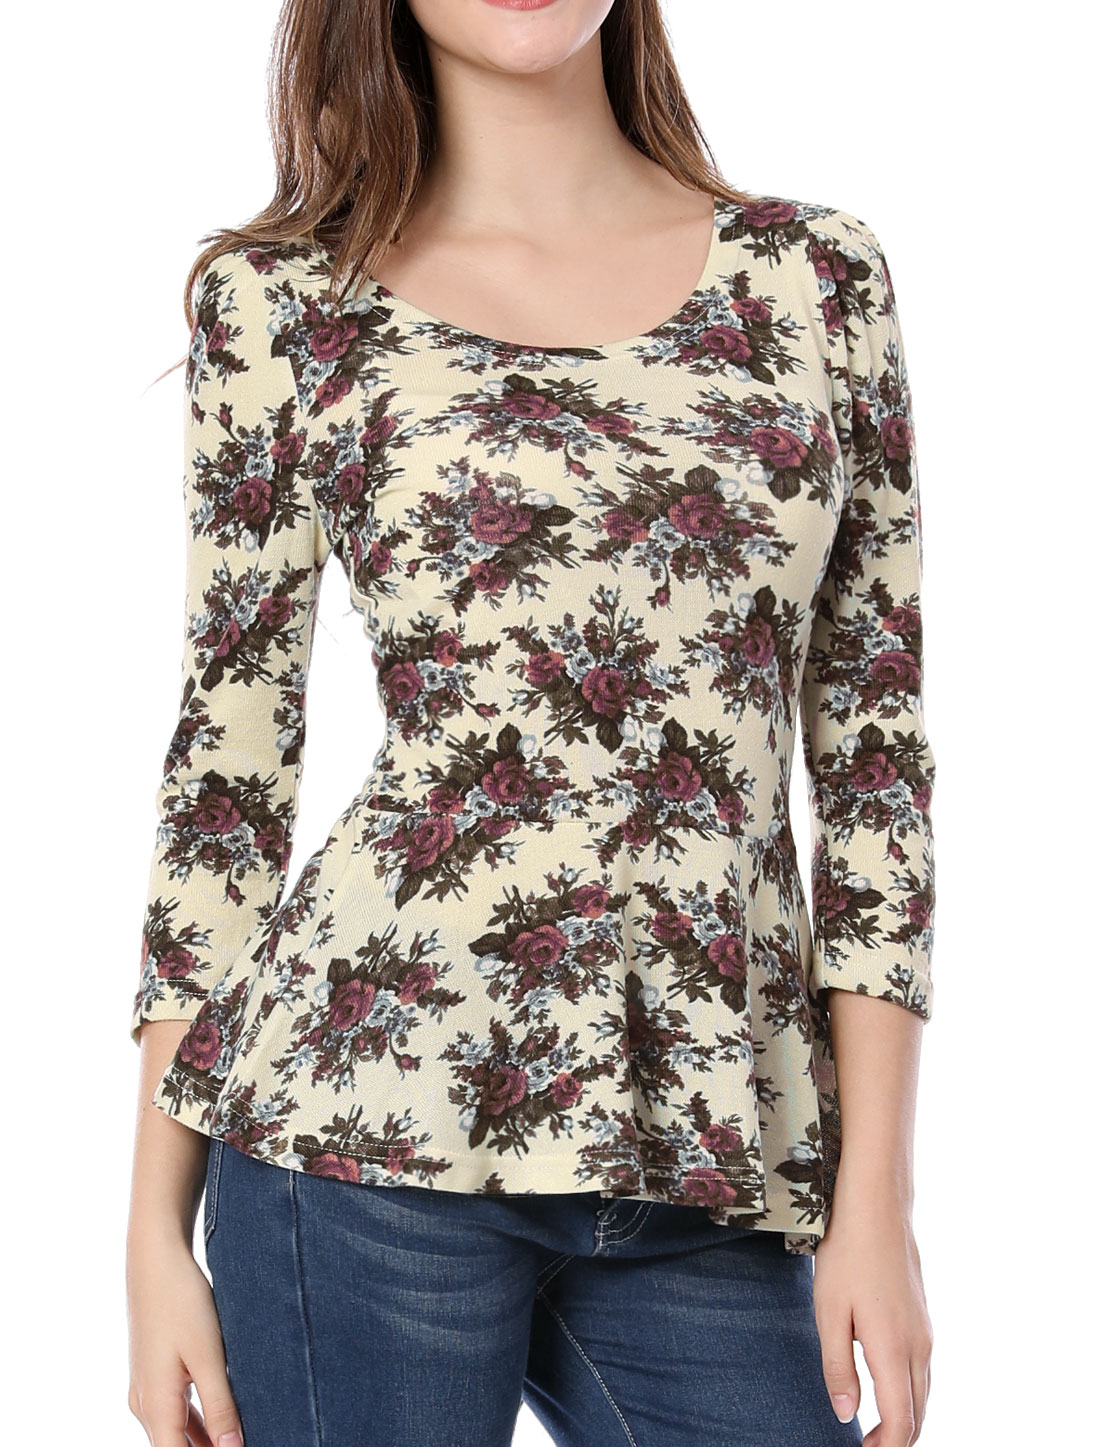 Women 3/4 Sleeve Scoop Neck Slim Fitting Flower Pattern Beige Shirt XS